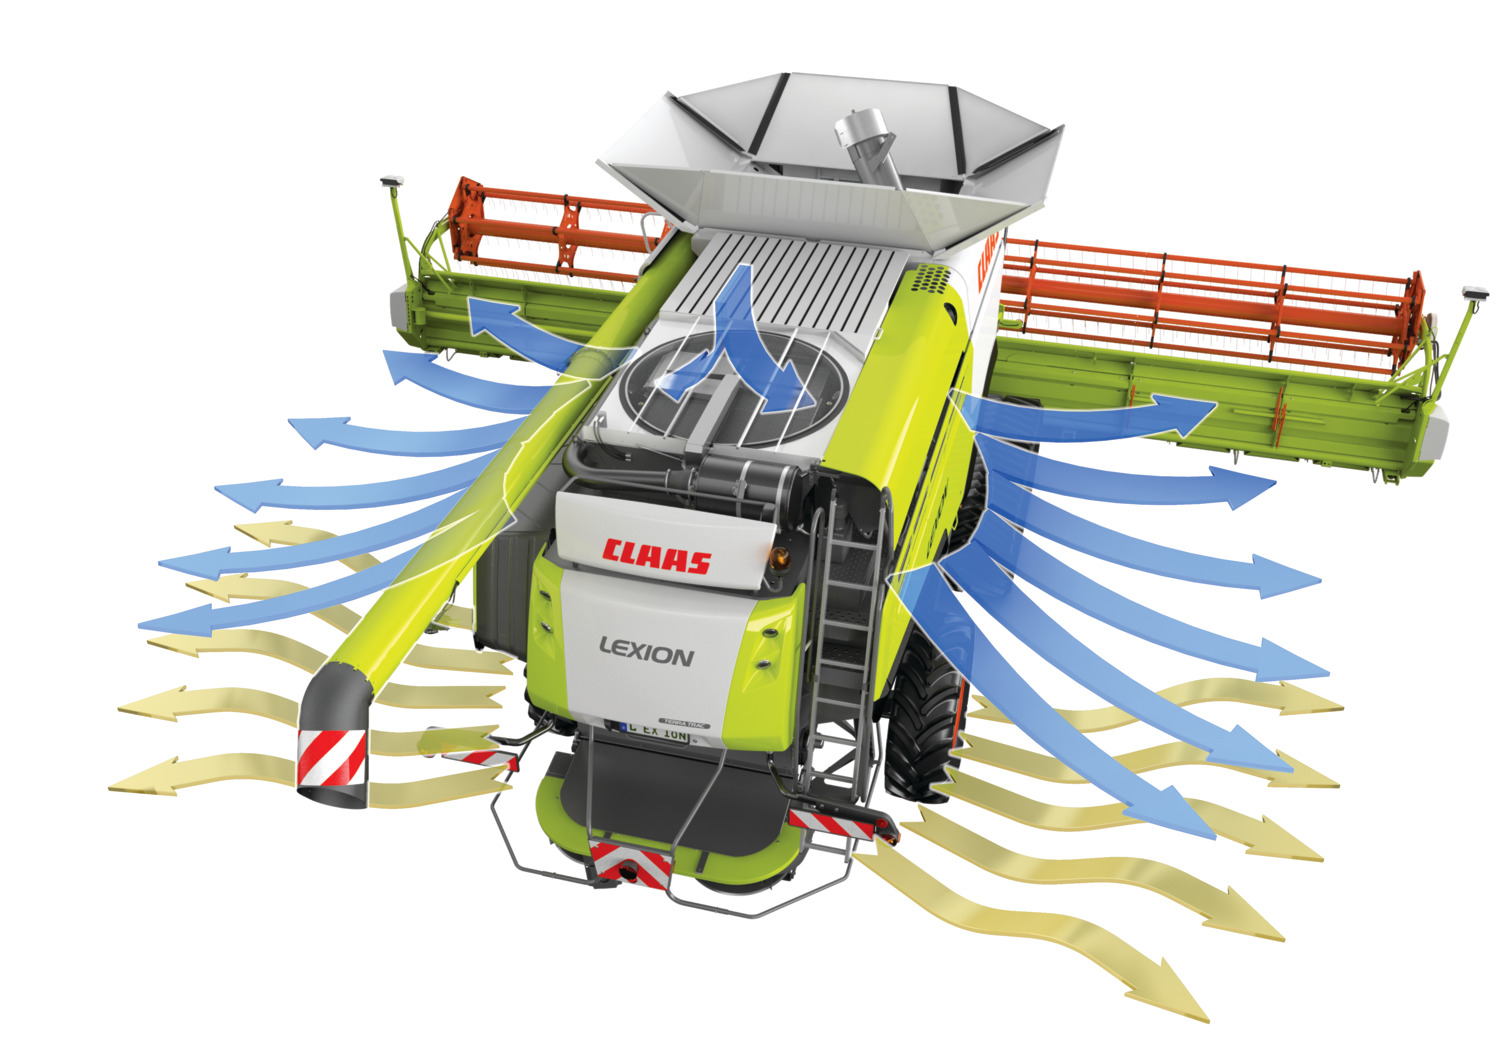 CLAAS DYNAMIC COOLING - CLAAS Glossar